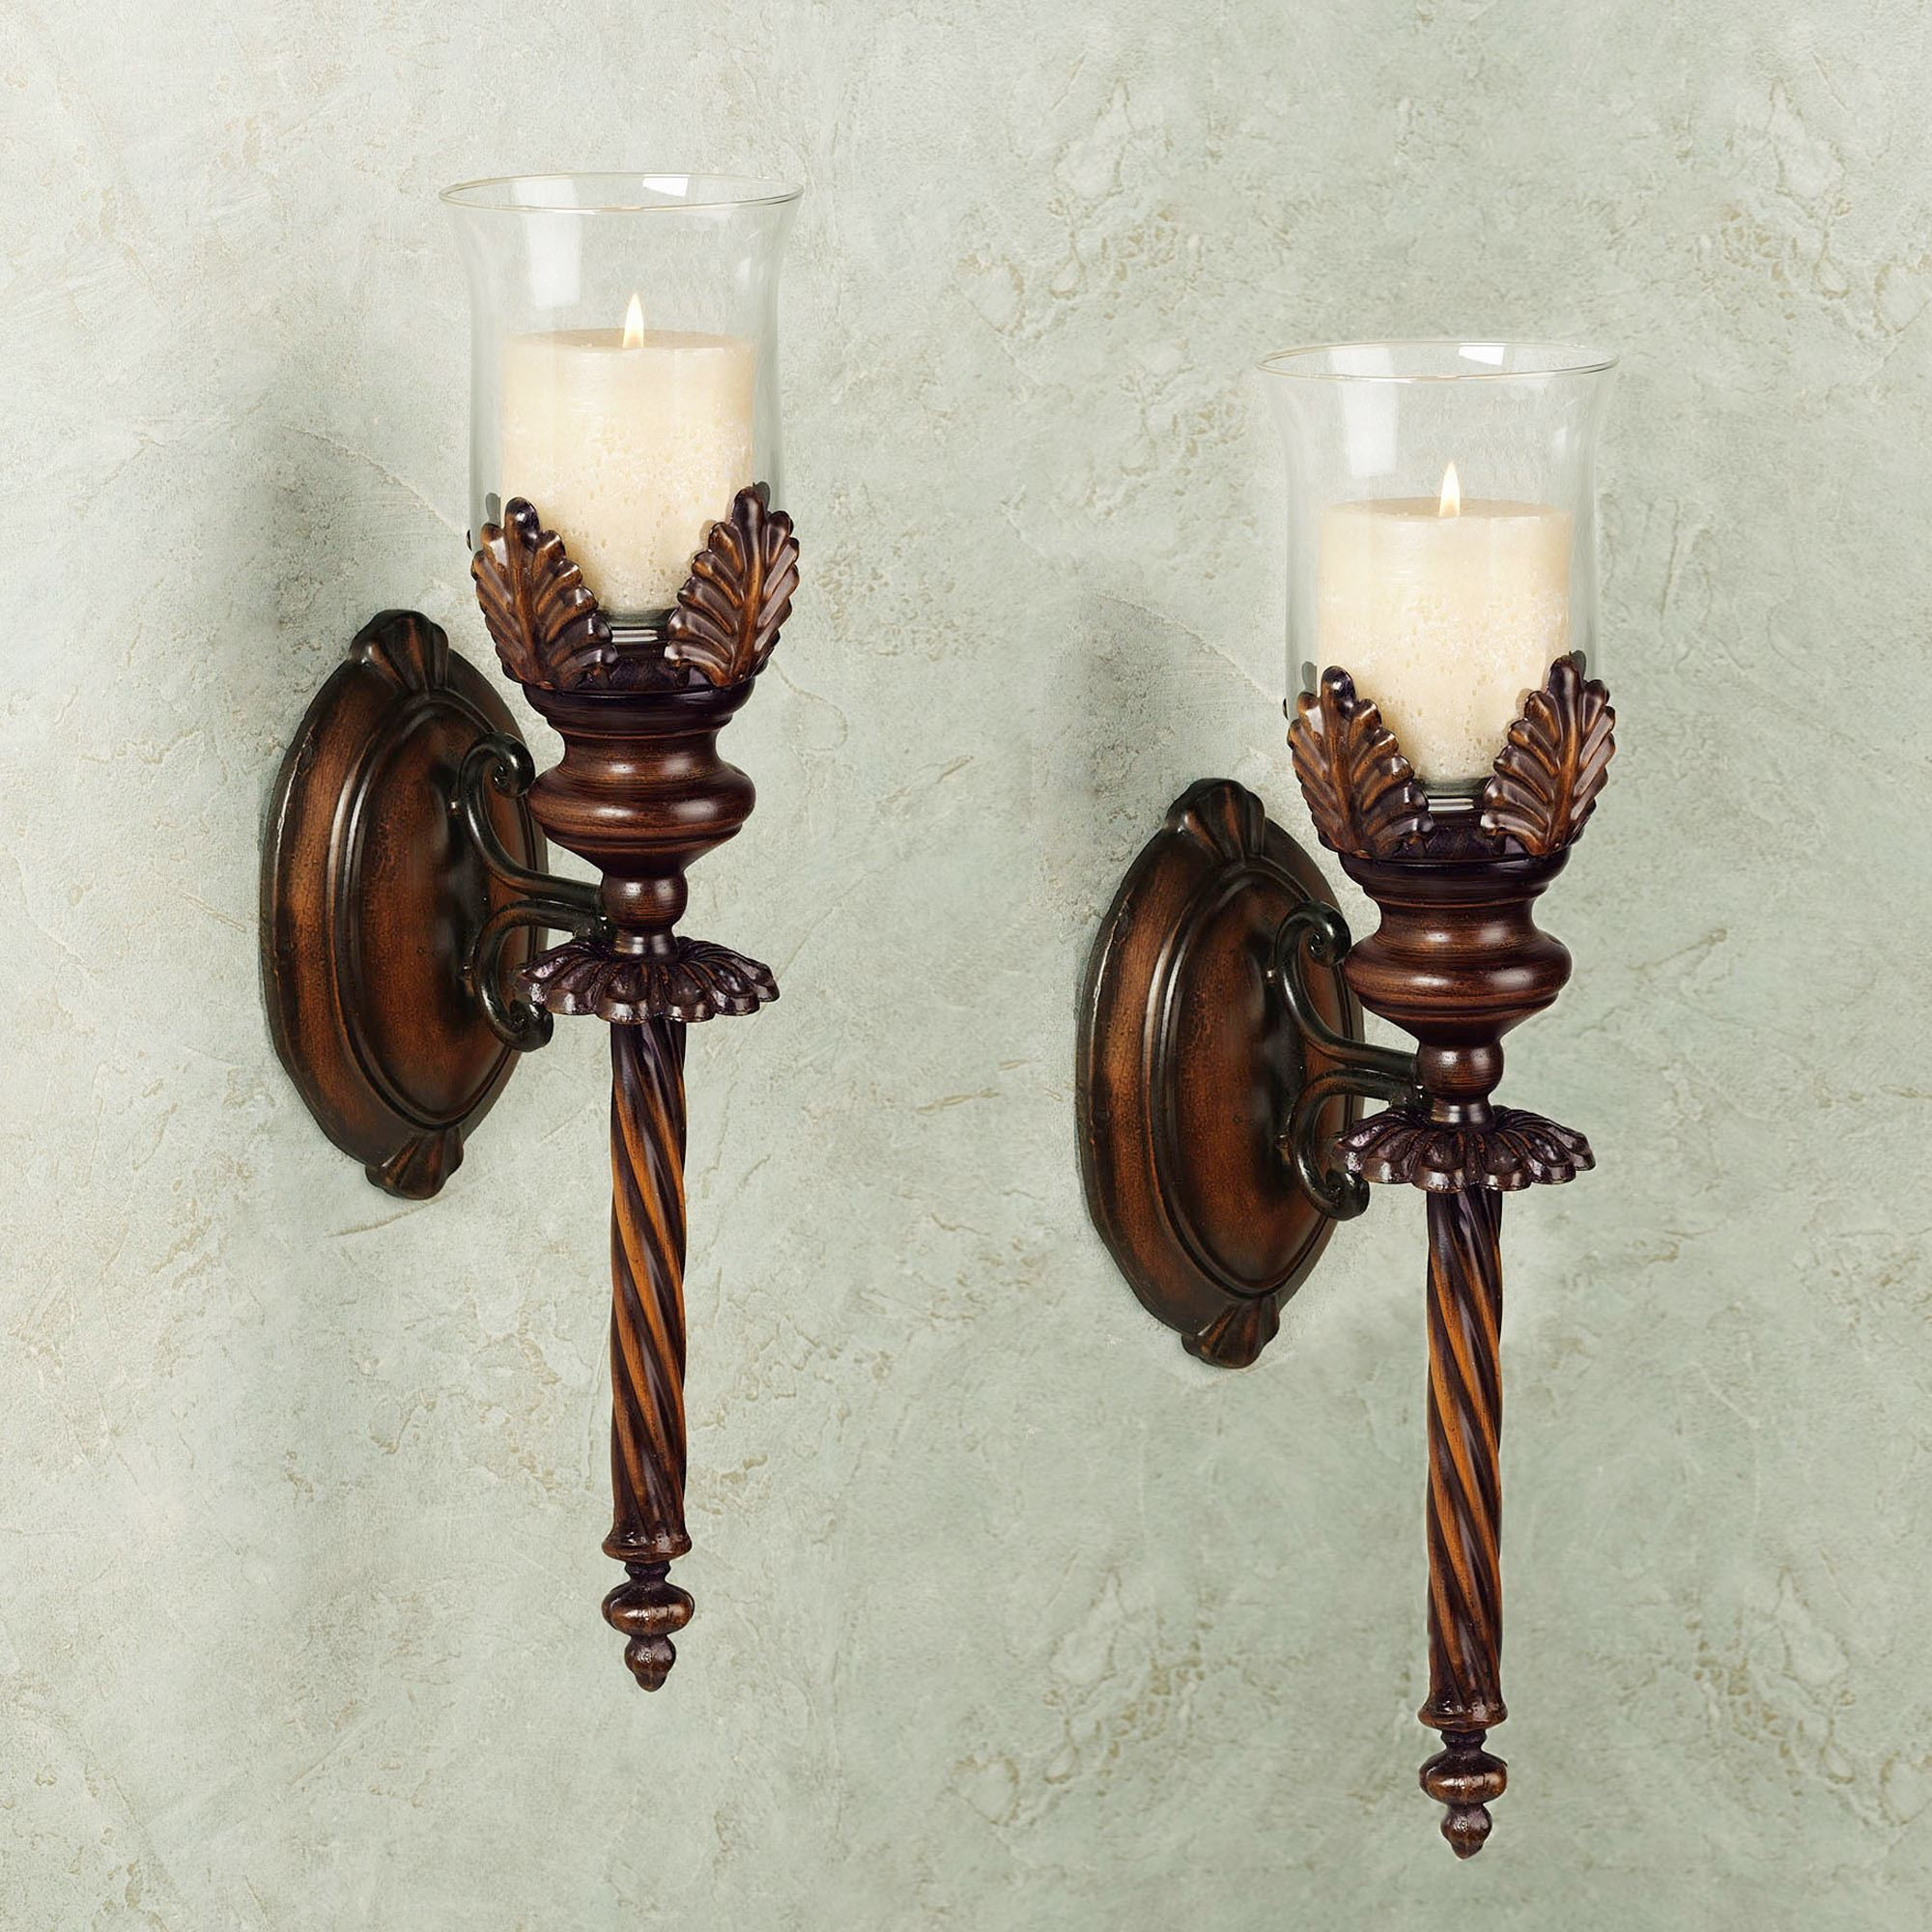 Amazing Gl Wall Sconce Candle Holder Ideas Large Sconces Holders Decor Candles Home Fragrance The